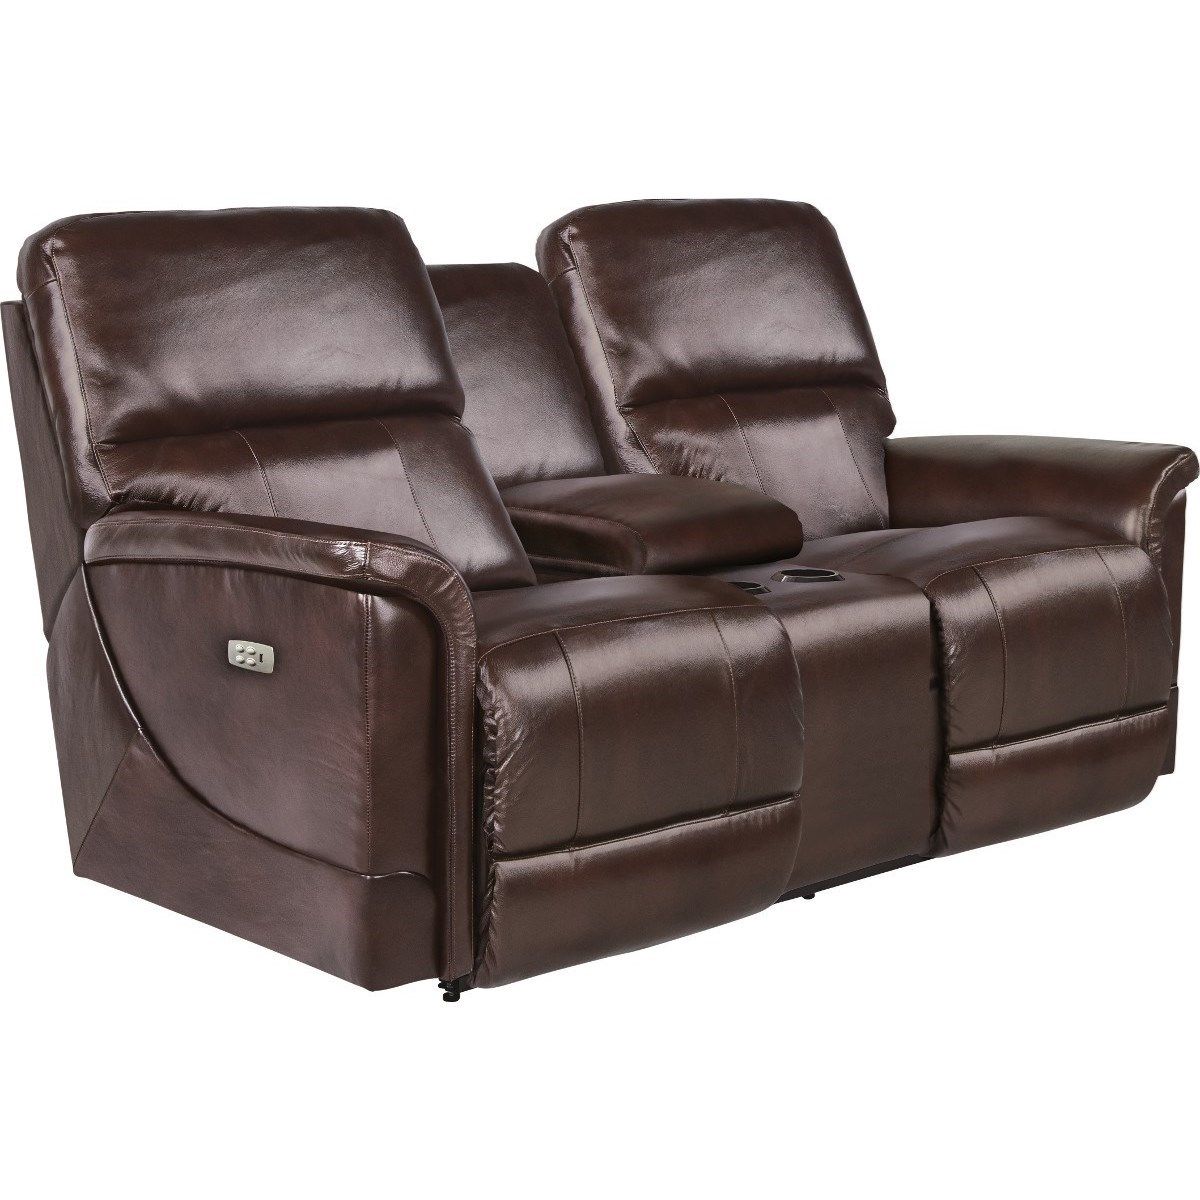 Power Reclining Power Headrest Loveseat with Cupholder Storage Console and USB Charging Ports